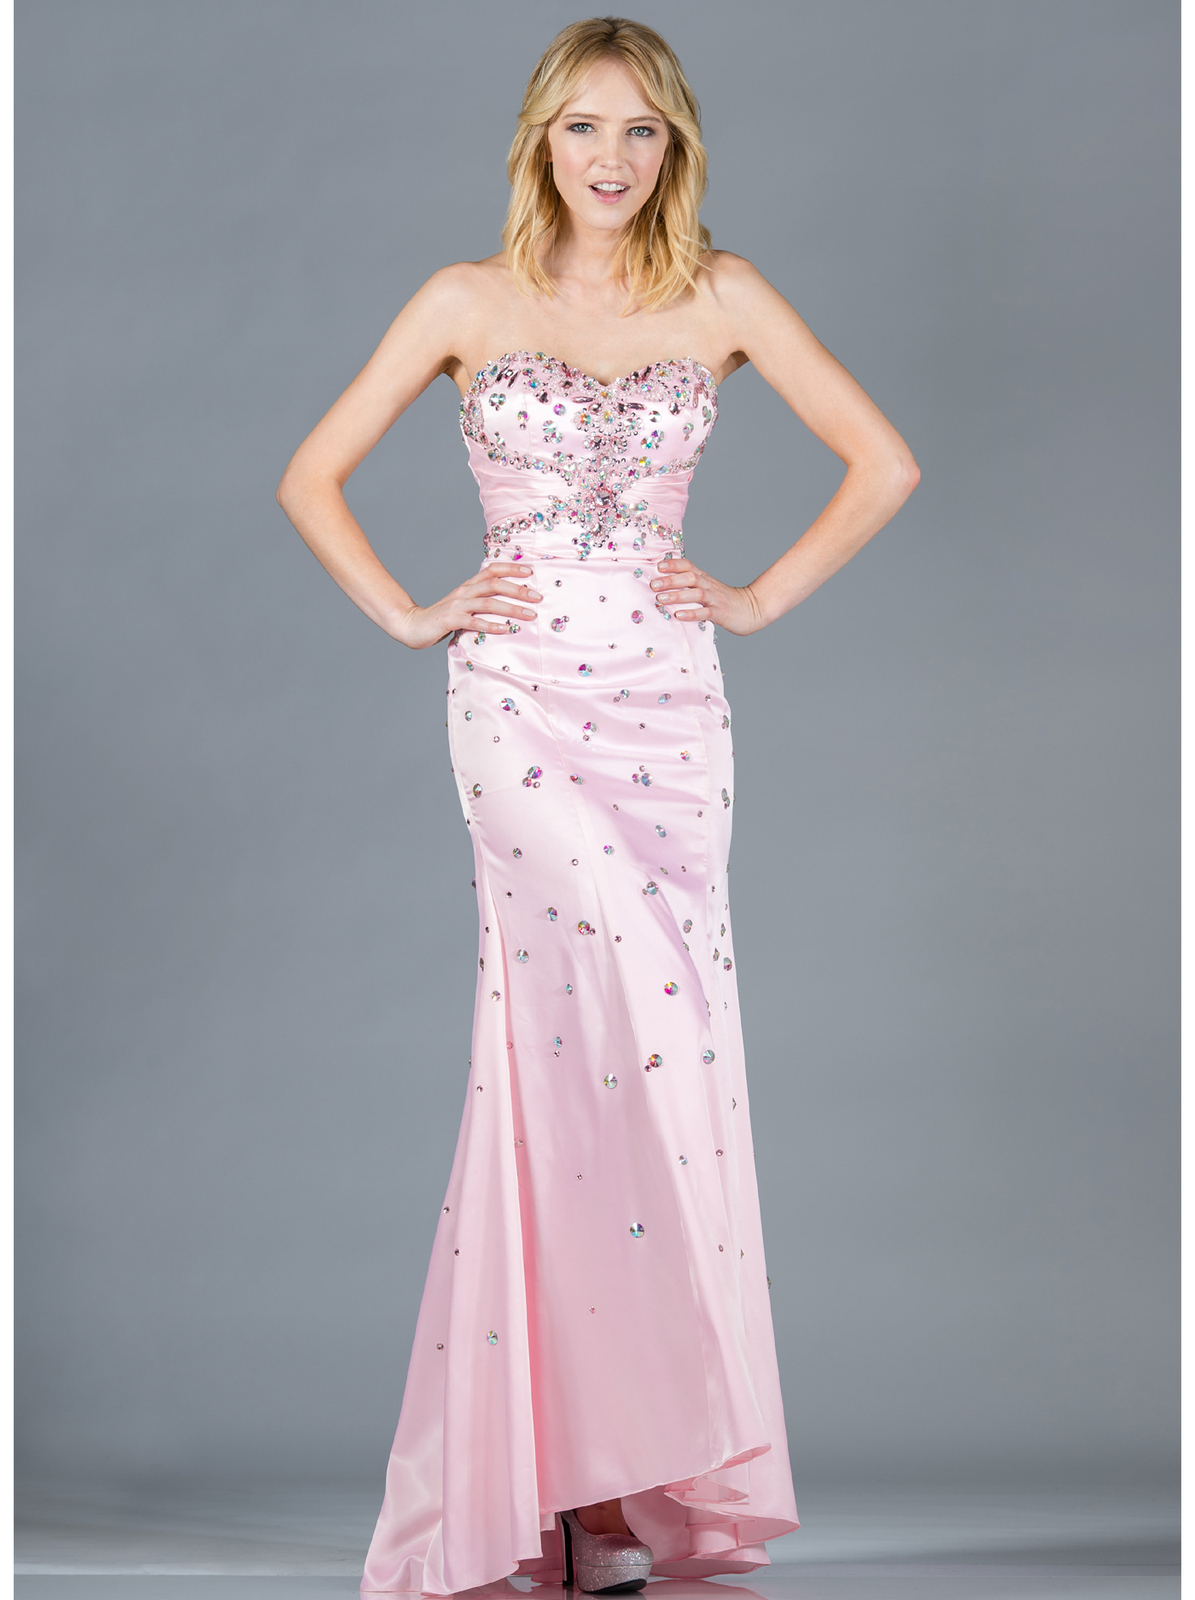 Baby Pink Jeweled Prom Dress | Sung Boutique L.A.